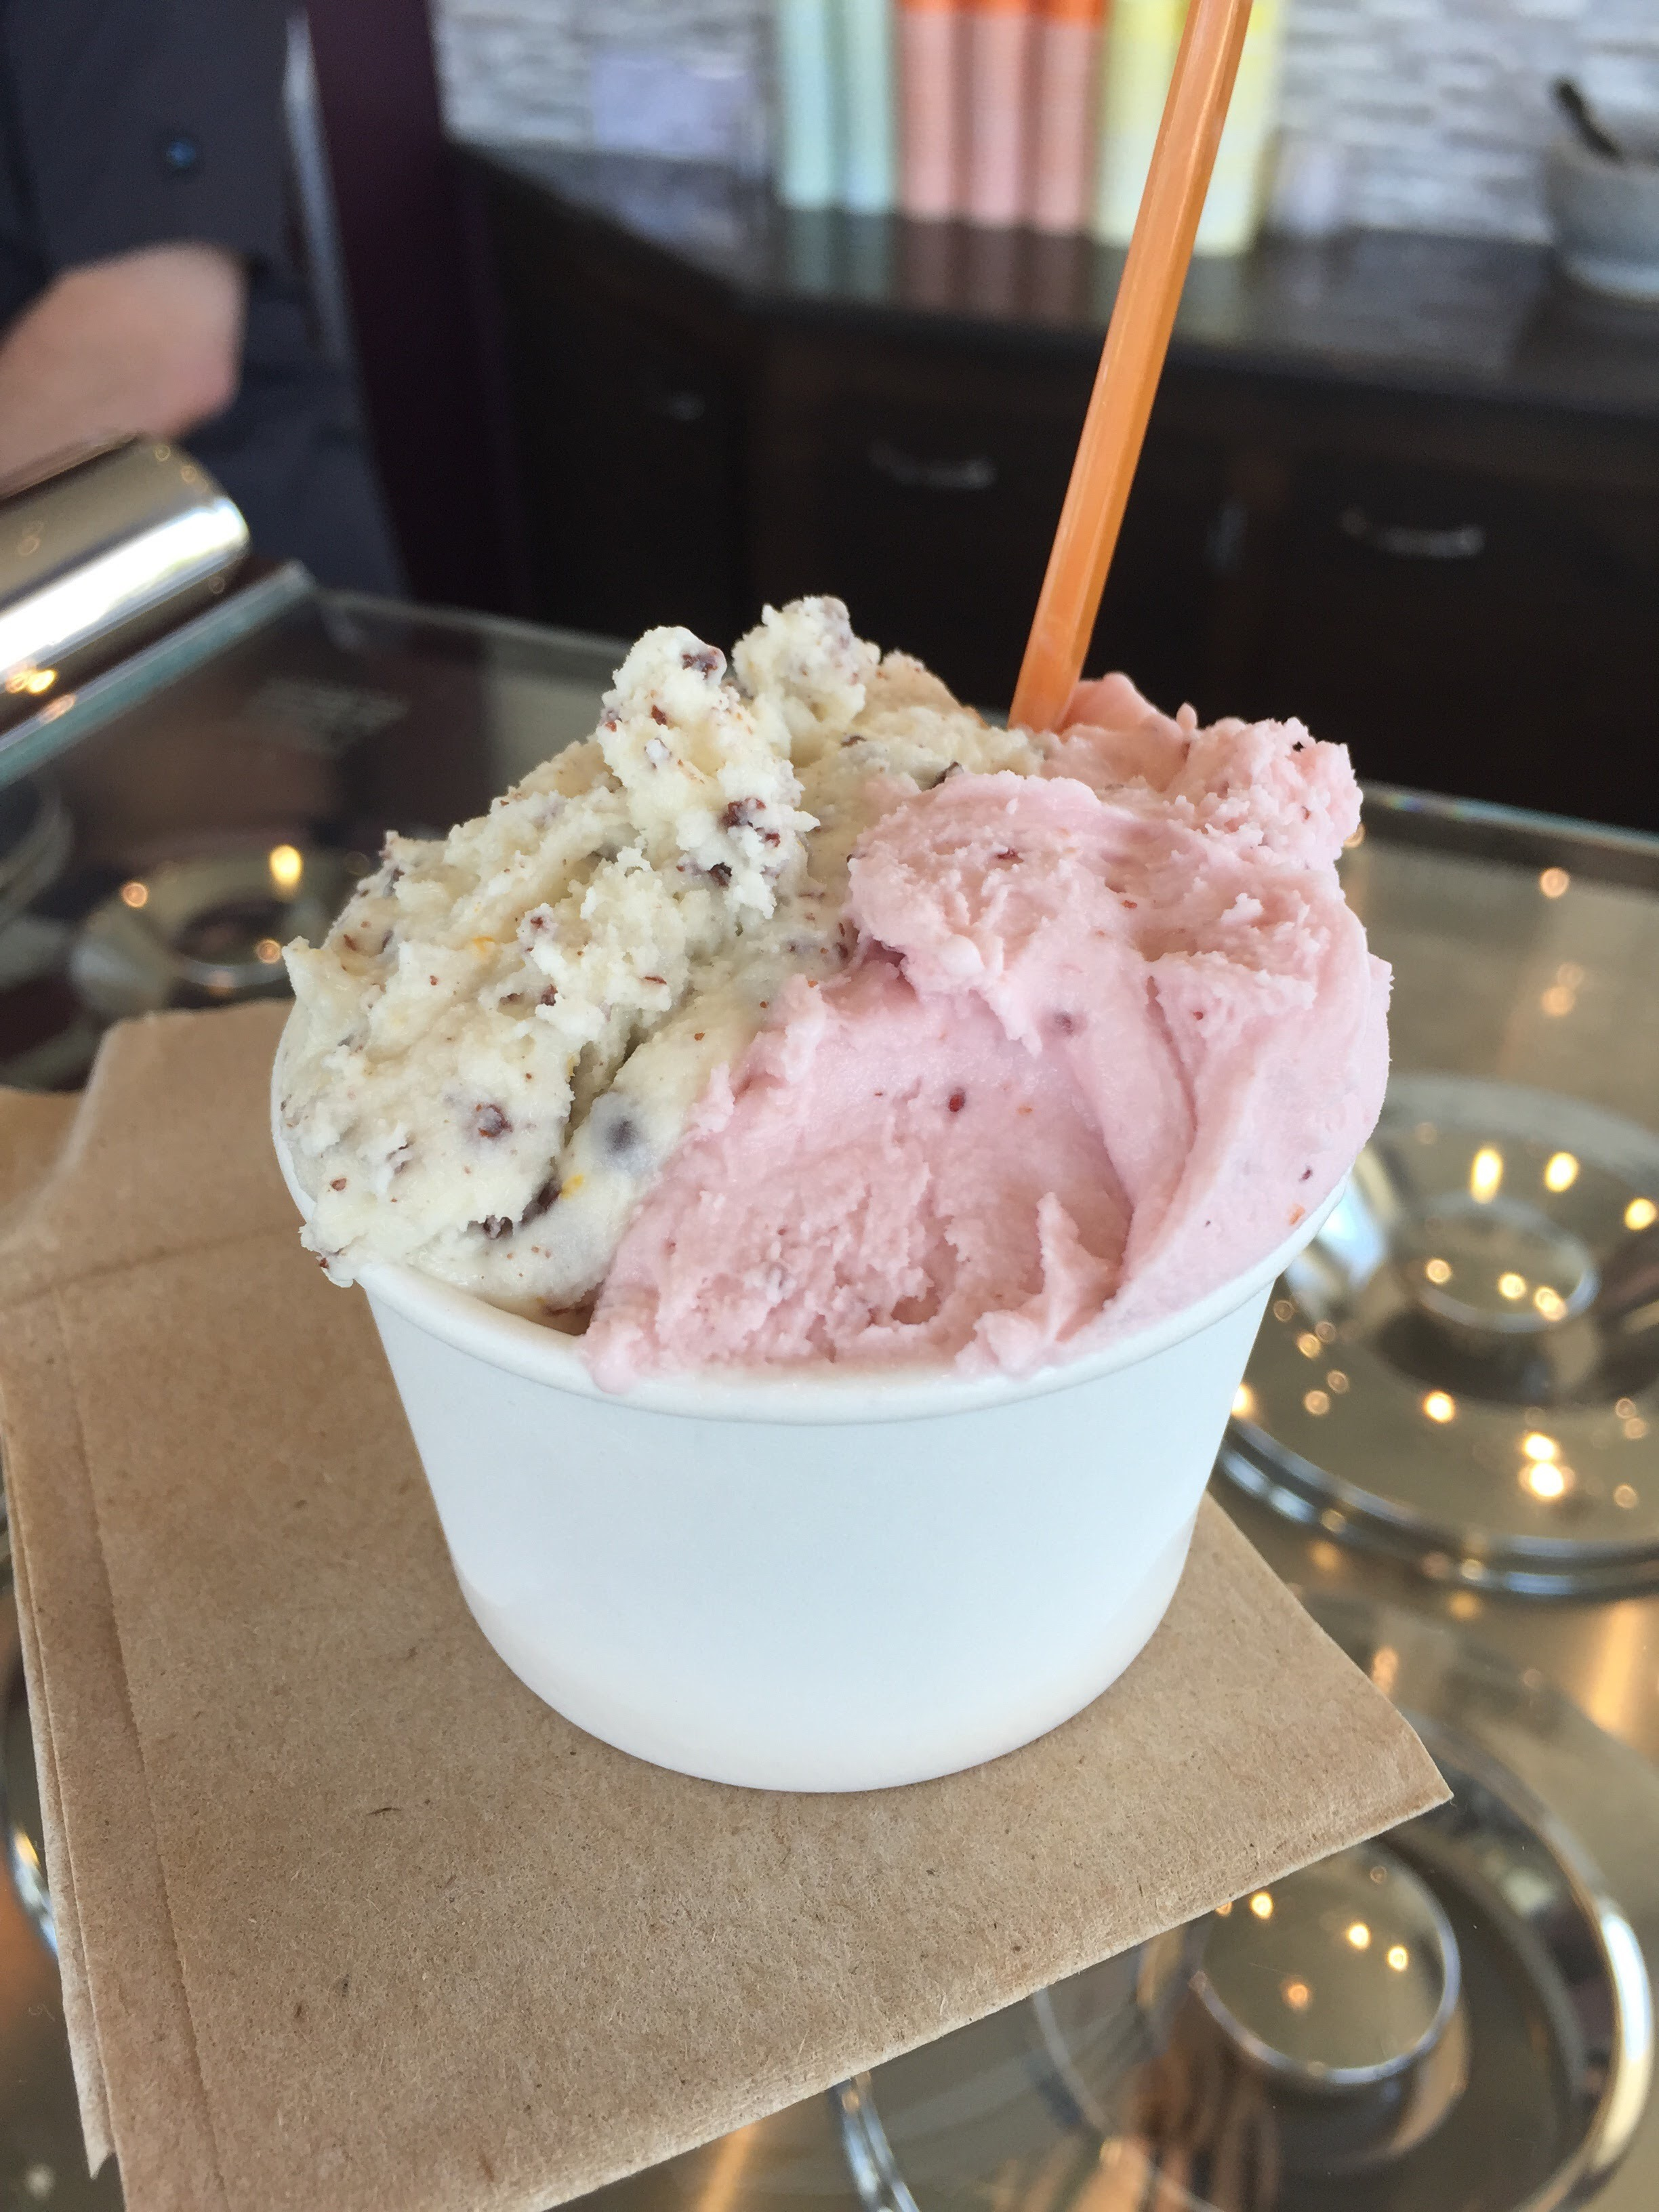 Va da vie gelato - We love this place, but prepare yourself to spend 10 minutes hearing about the integrity of the gelato